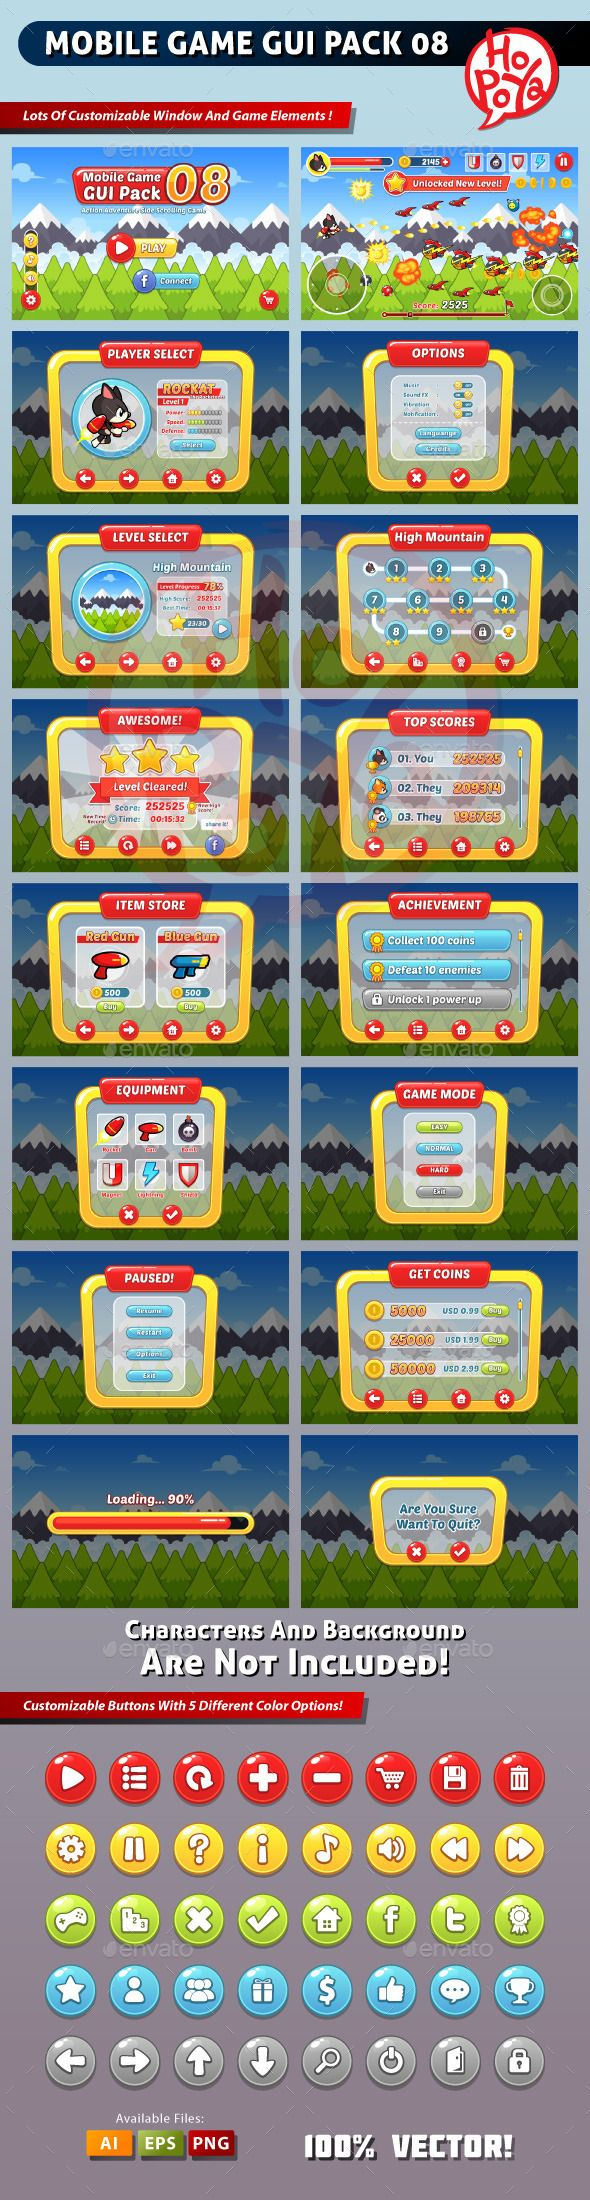 Mobile Game GUI Pack 08 - User Interfaces Game Assets | DOWNLOAD: https://graphicriver.net/item/mobile-game-gui-pack-08/8954618?ref=sinzo